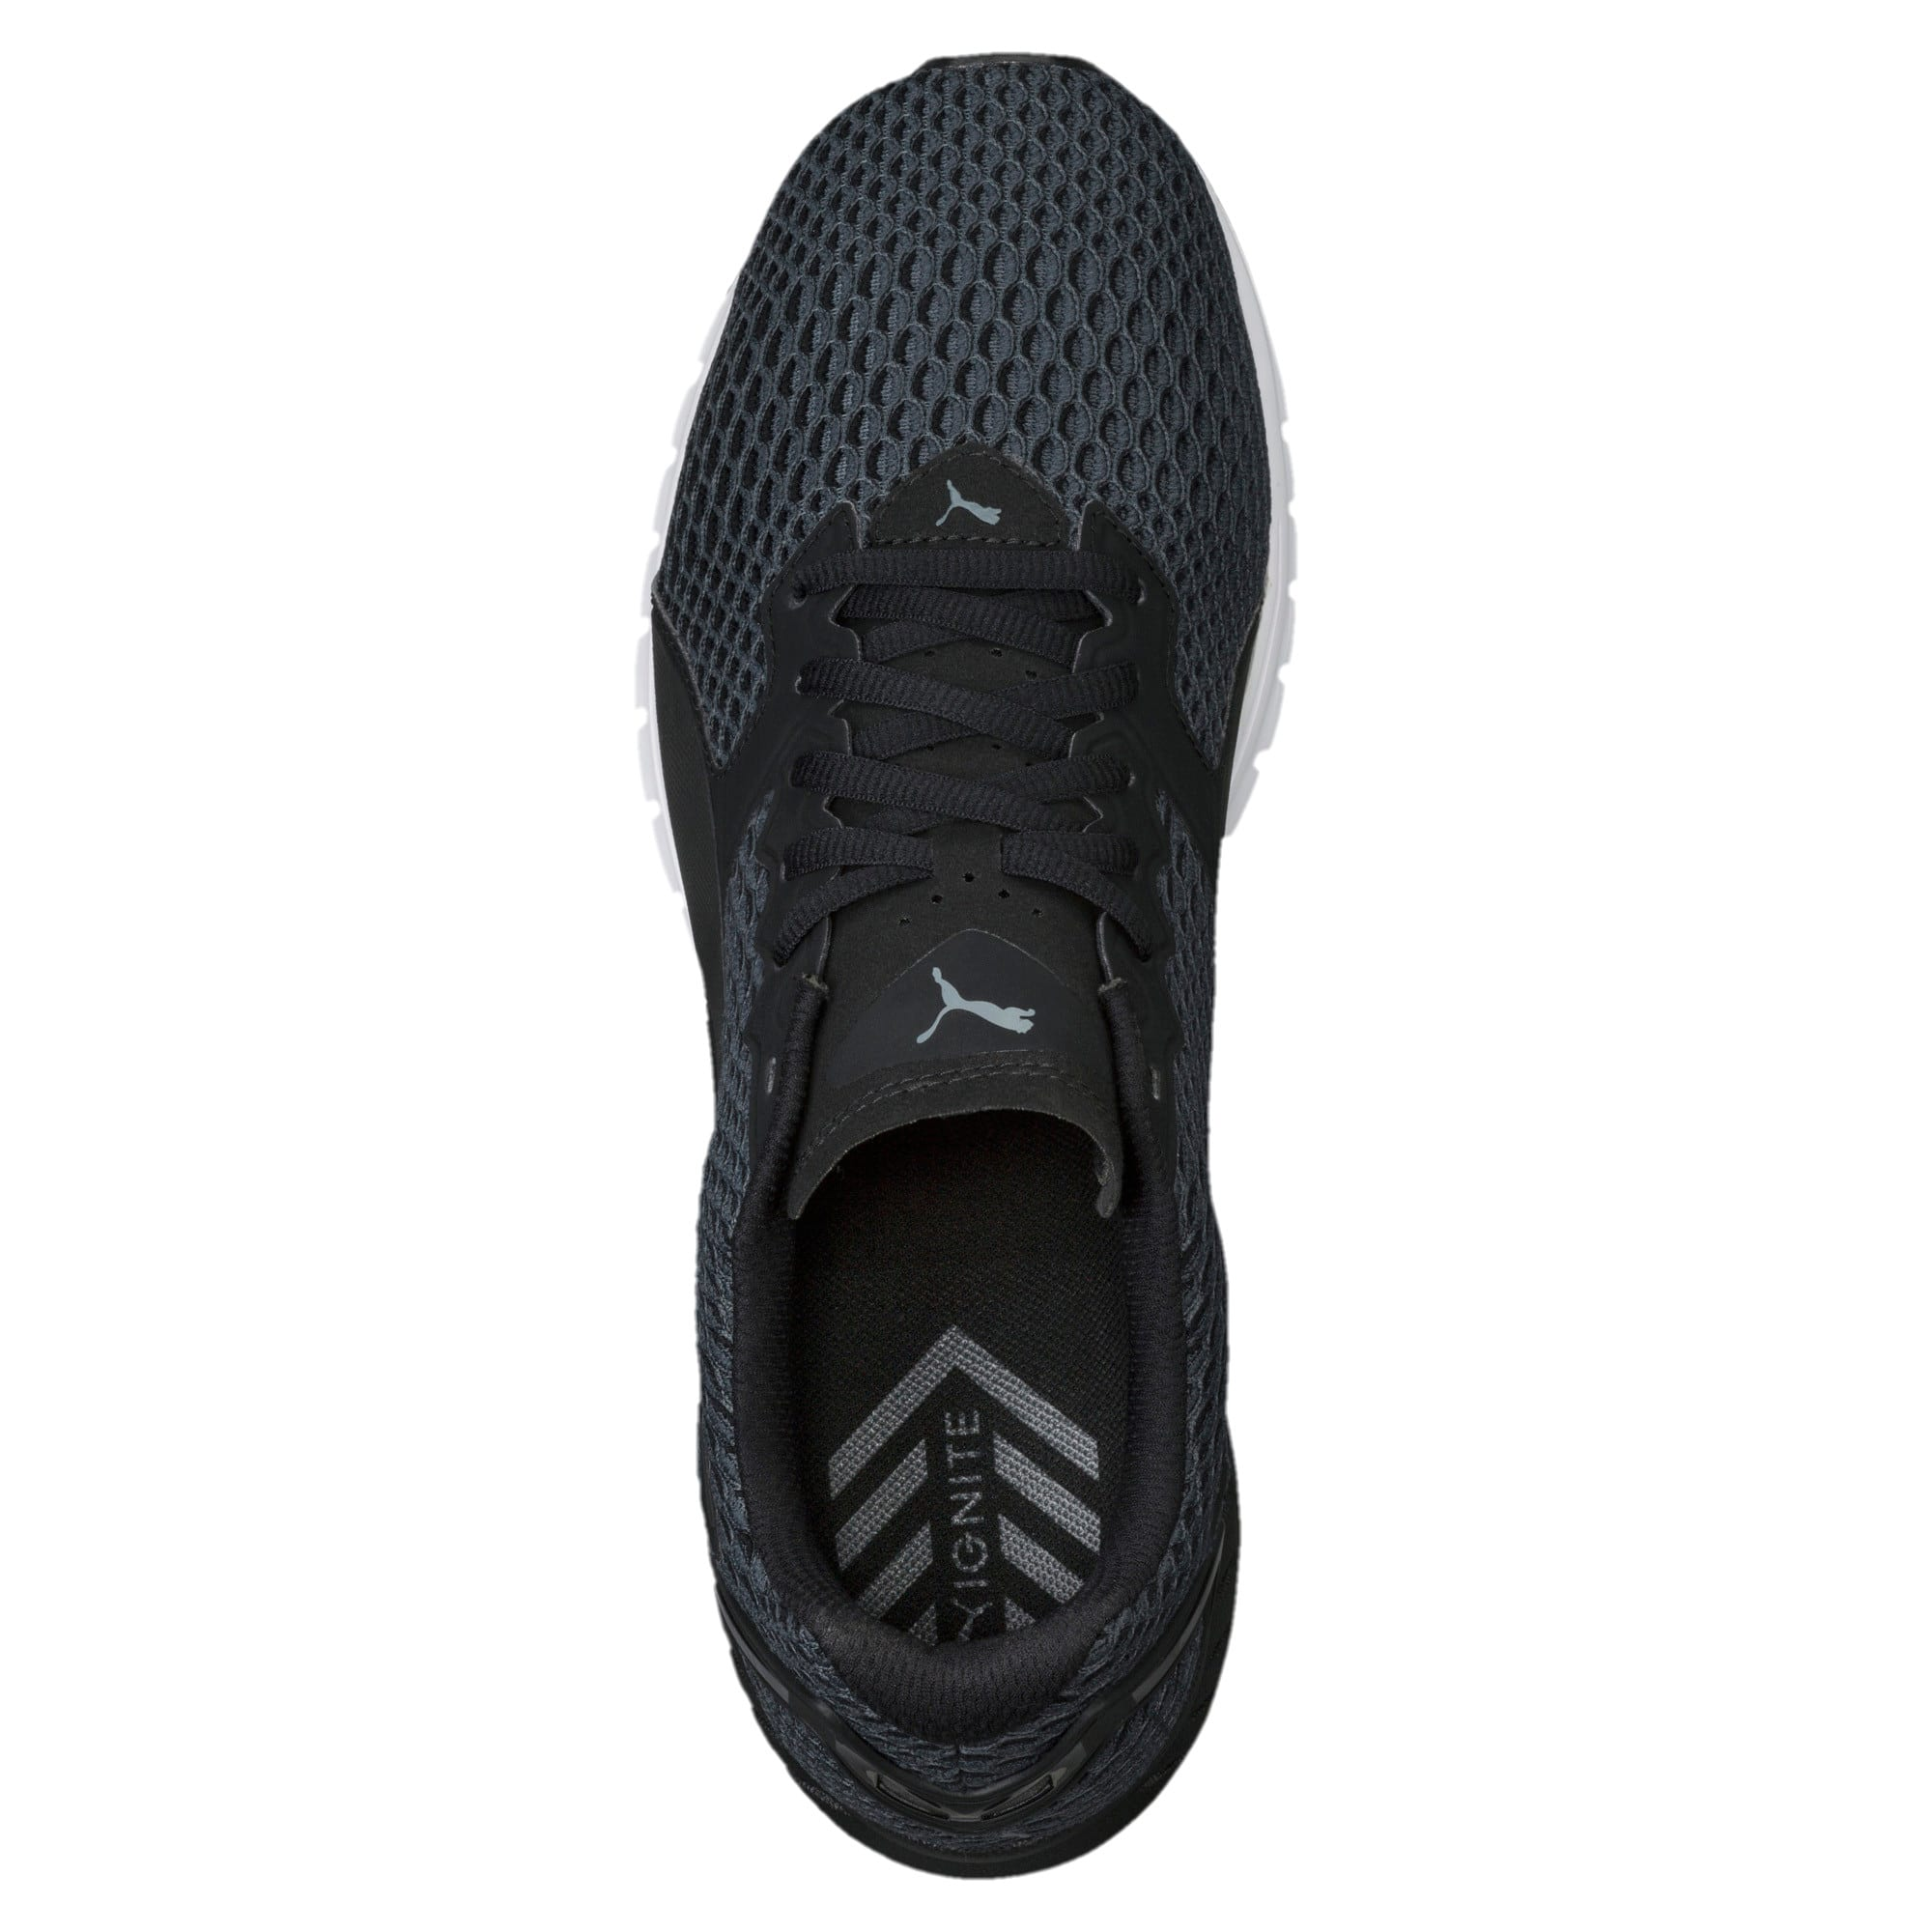 Thumbnail 5 of IGNITE Dual New Core Men's Training Shoes, Puma Black-Asphalt, medium-IND